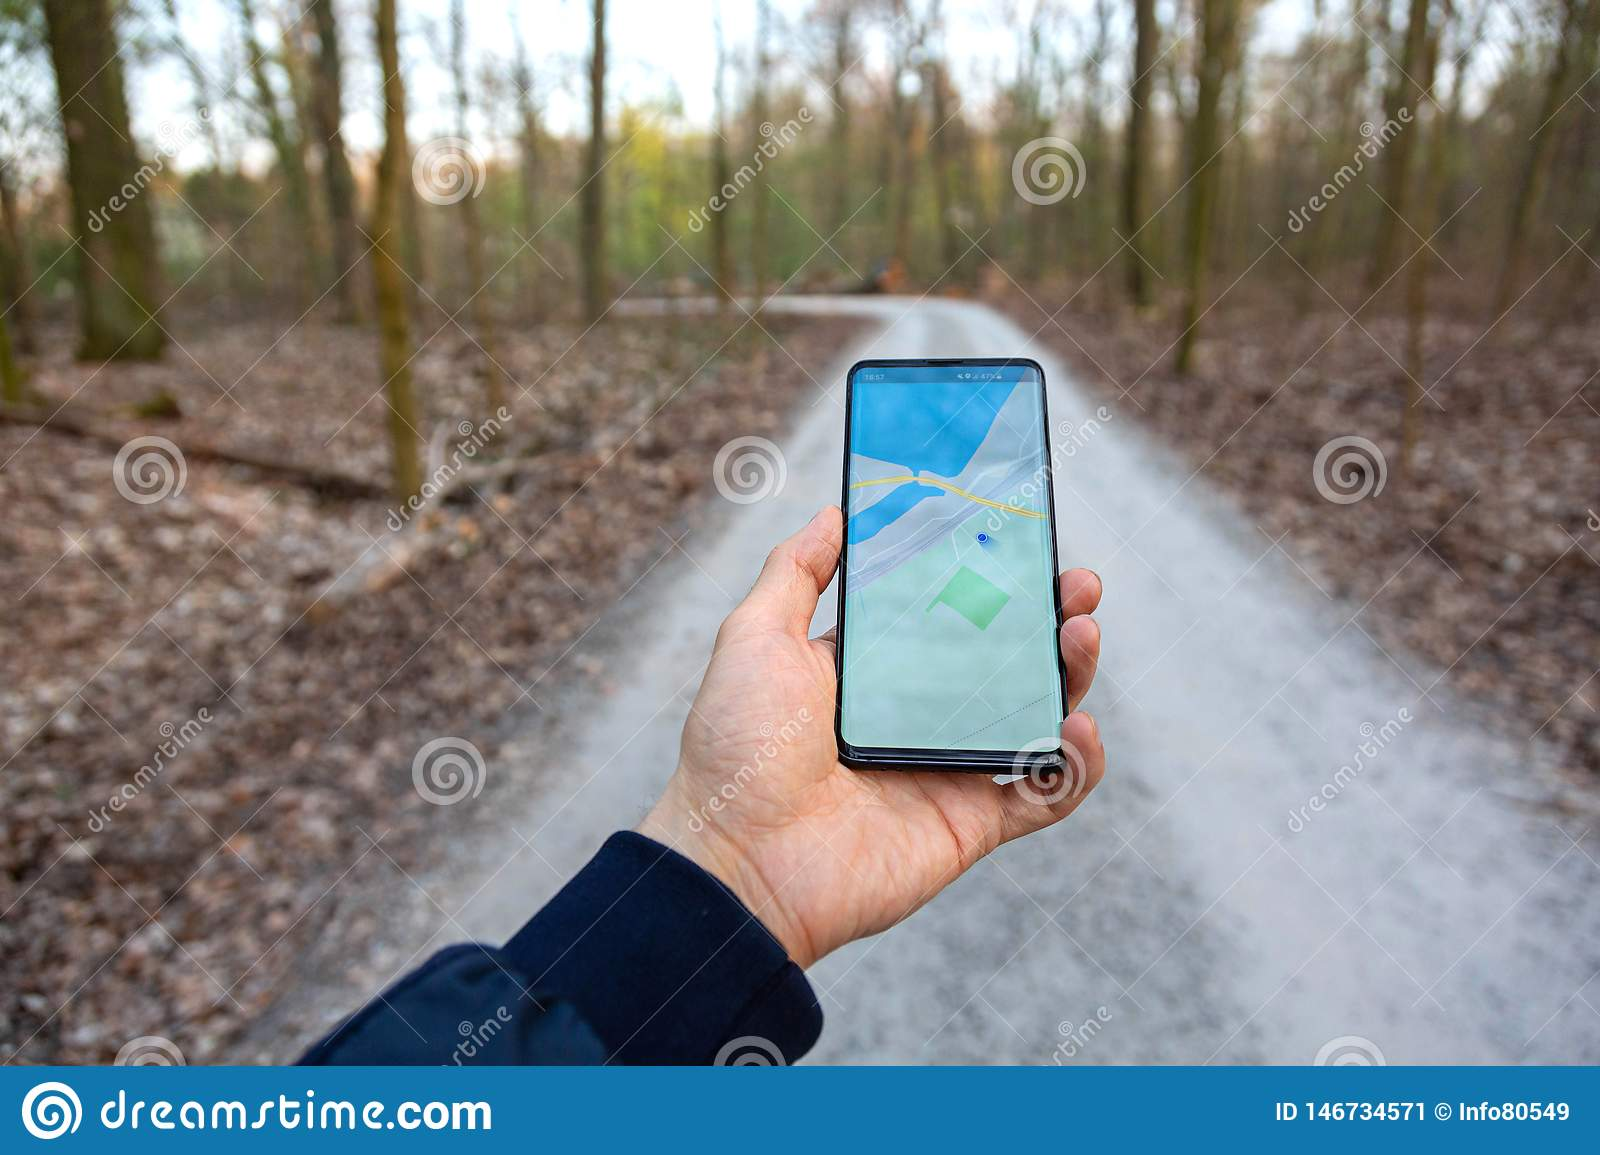 Hand holding a mobile telephone showing a gps map in a forest background